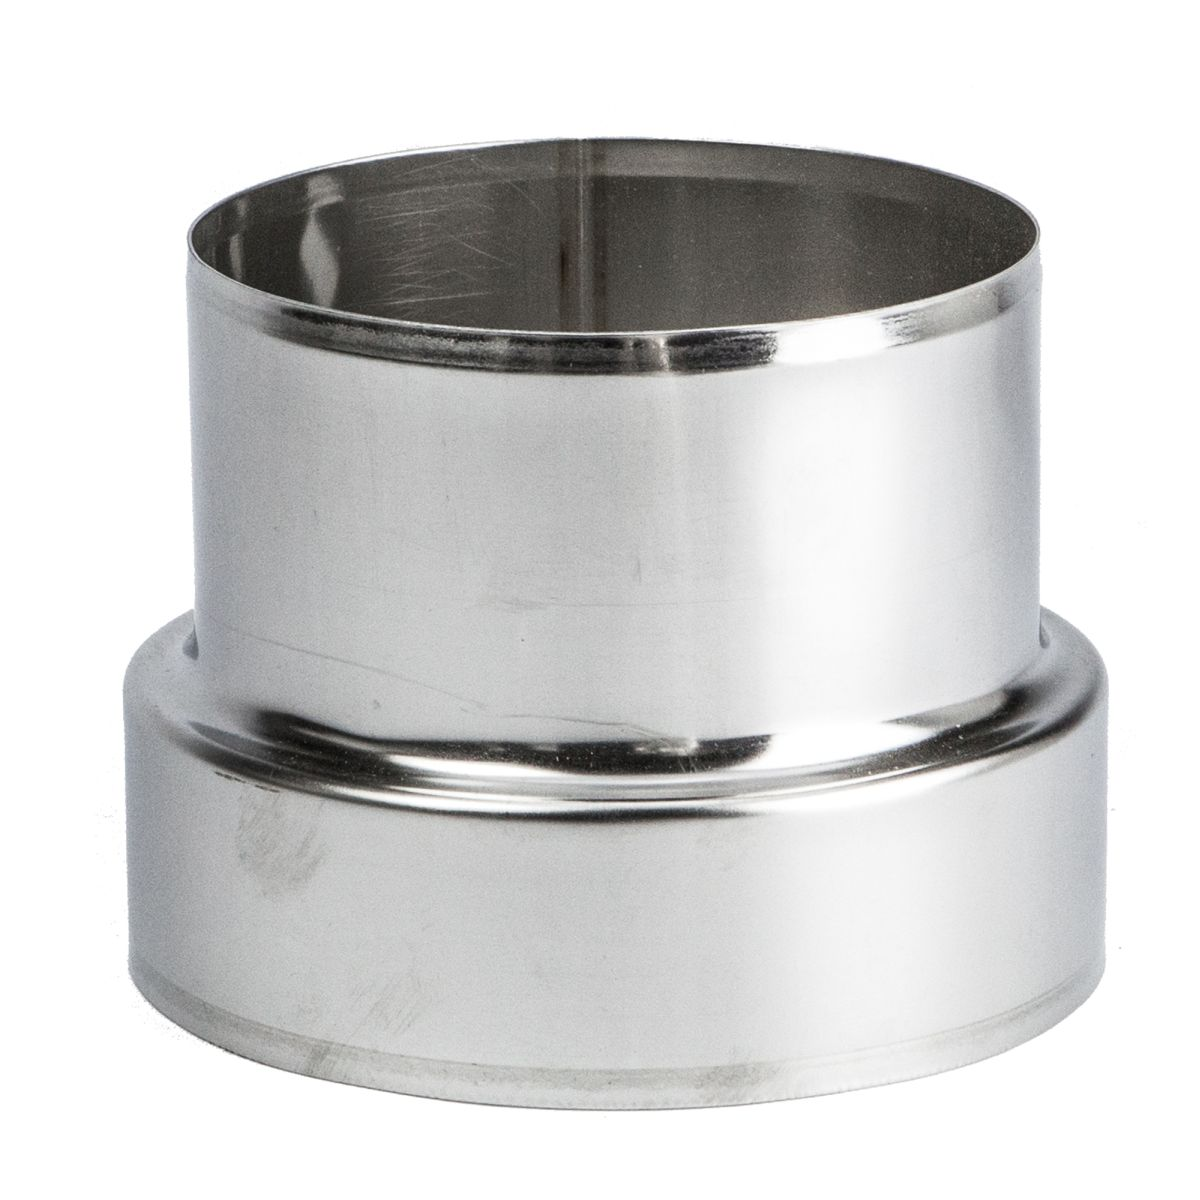 Stainless Steel Pipe Connector Adaptor Chimney Flue Liner